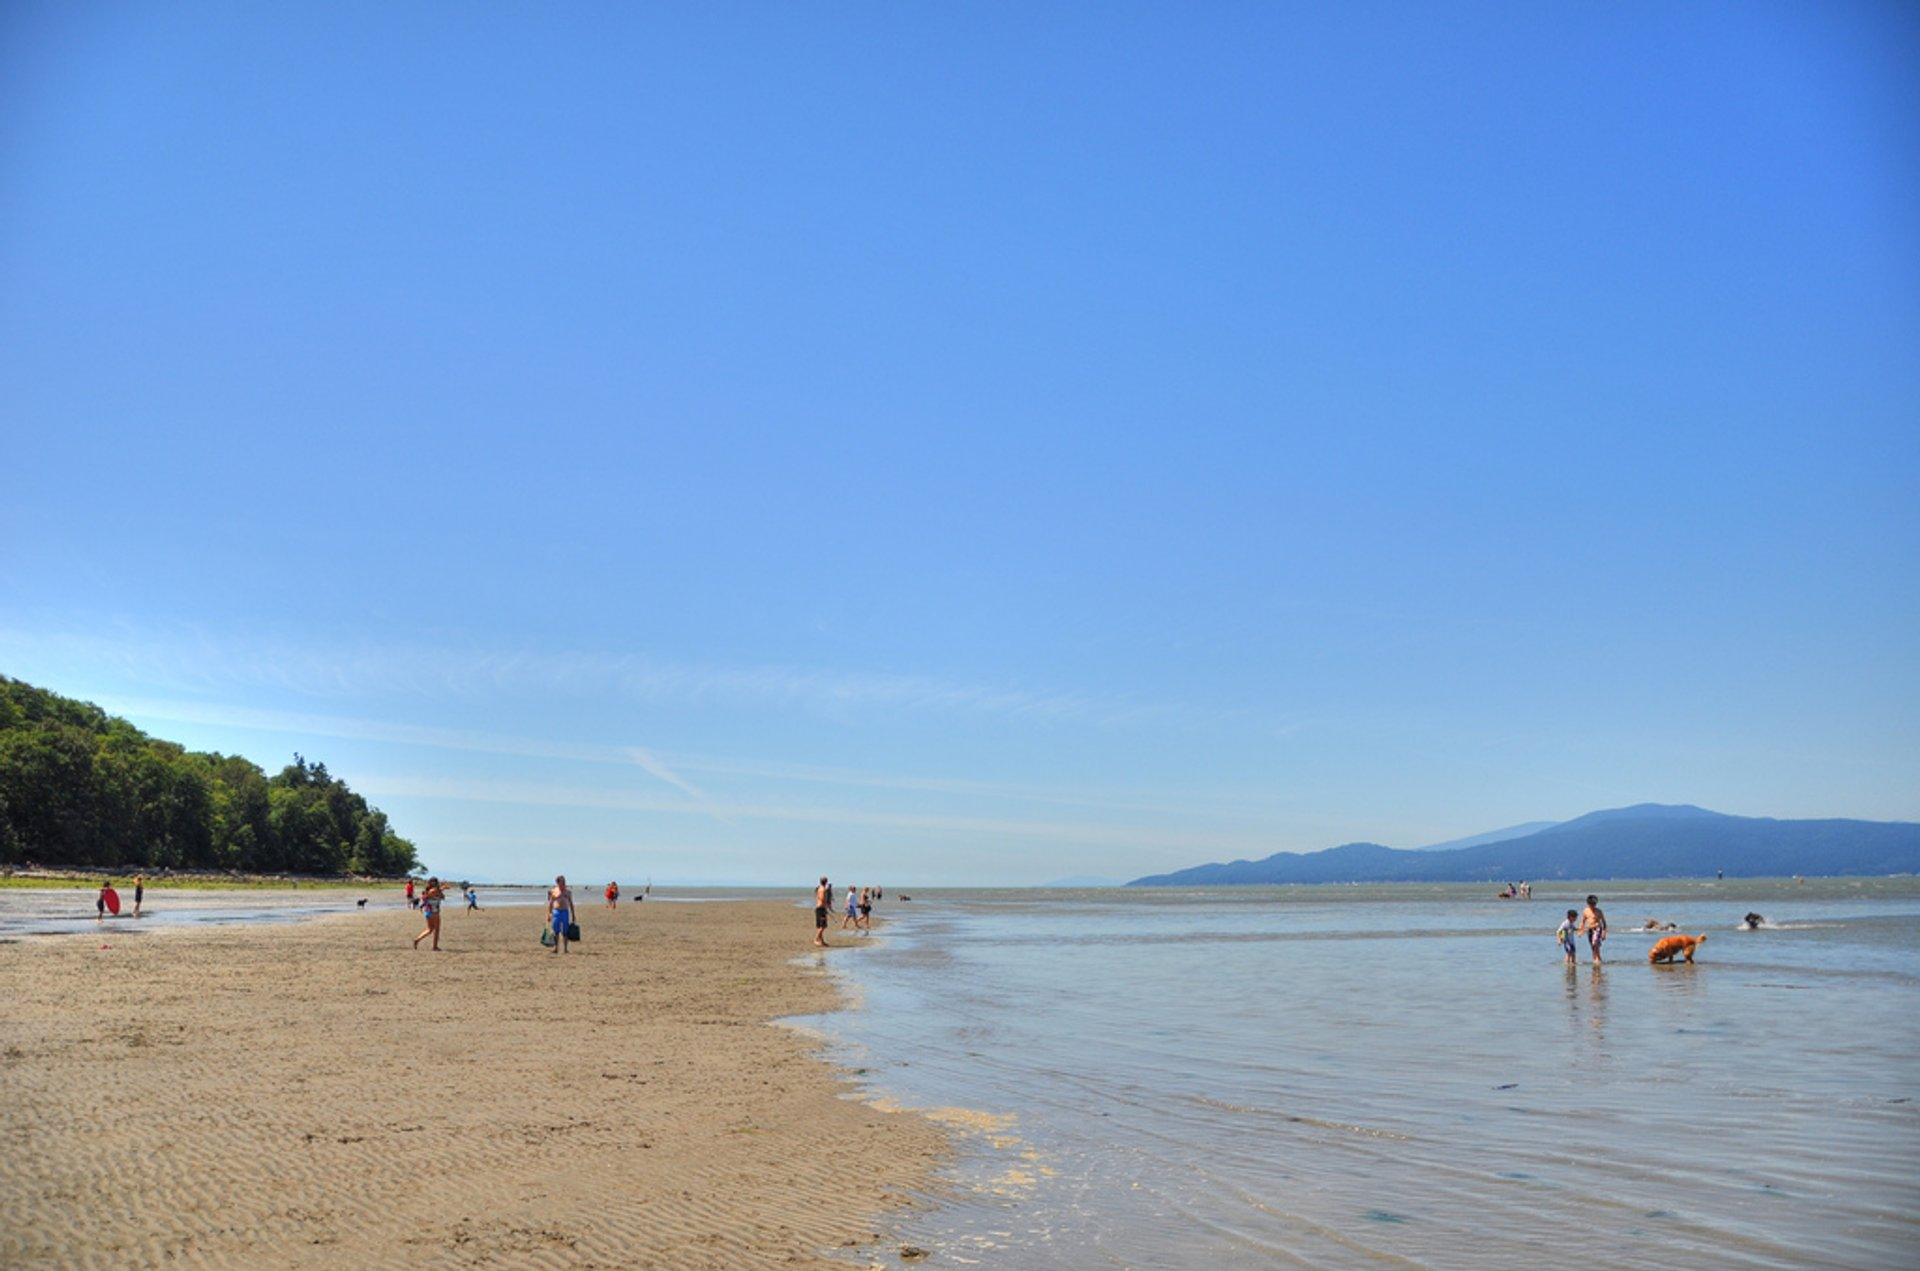 Beach Season in Vancouver 2019 - Best Time